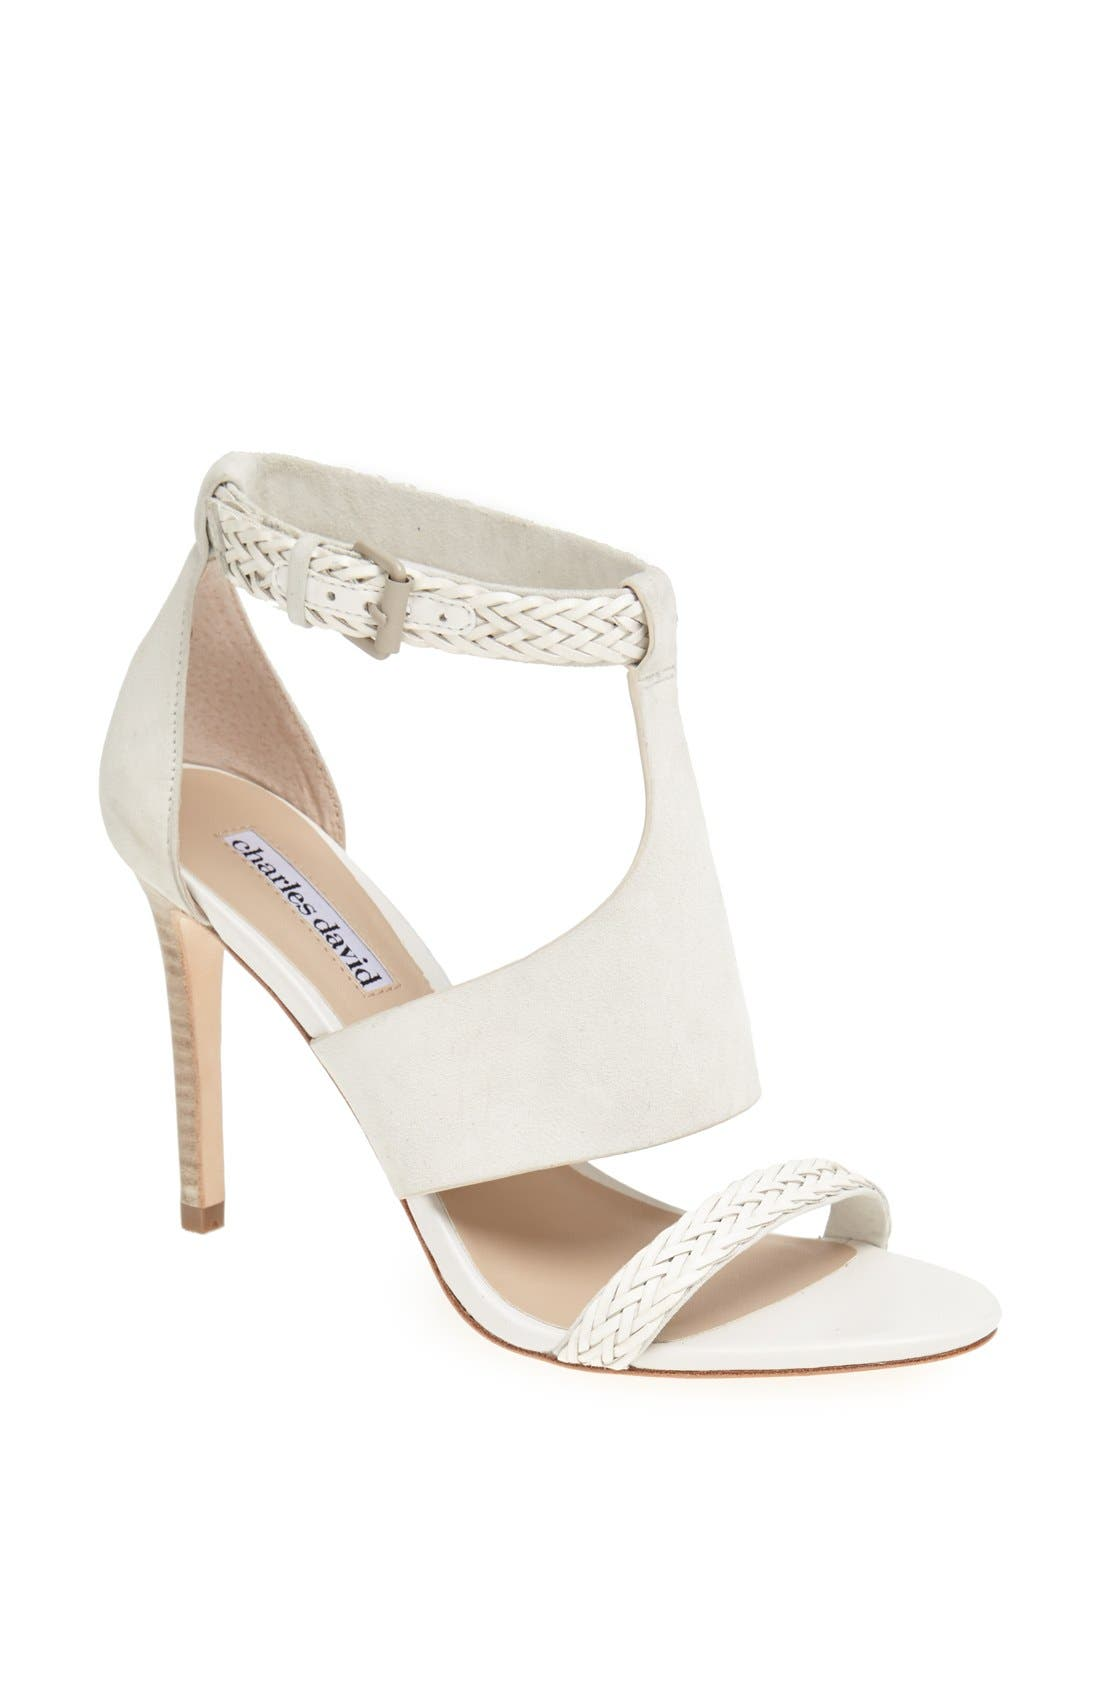 Alternate Image 1 Selected - Charles David 'Integrity' Sandal